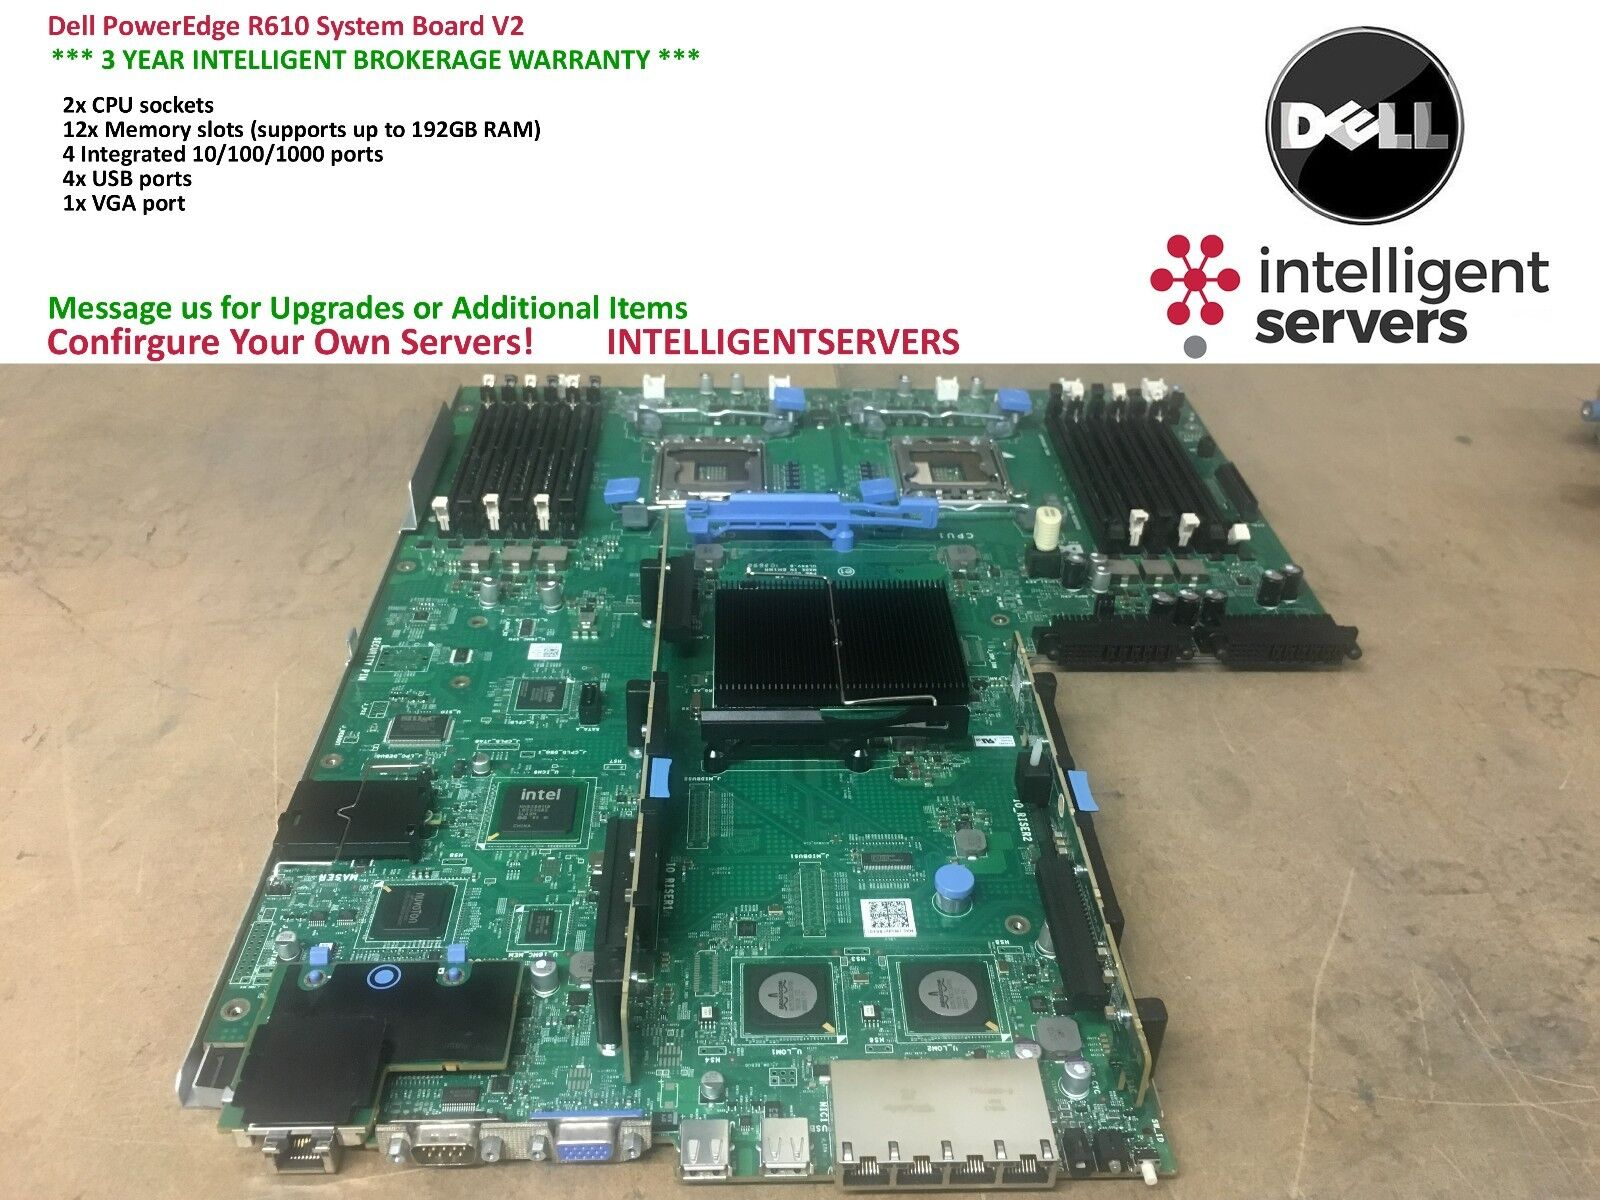 Details about Dell PowerEdge R610 System Board V2 ** F0XJ6 **